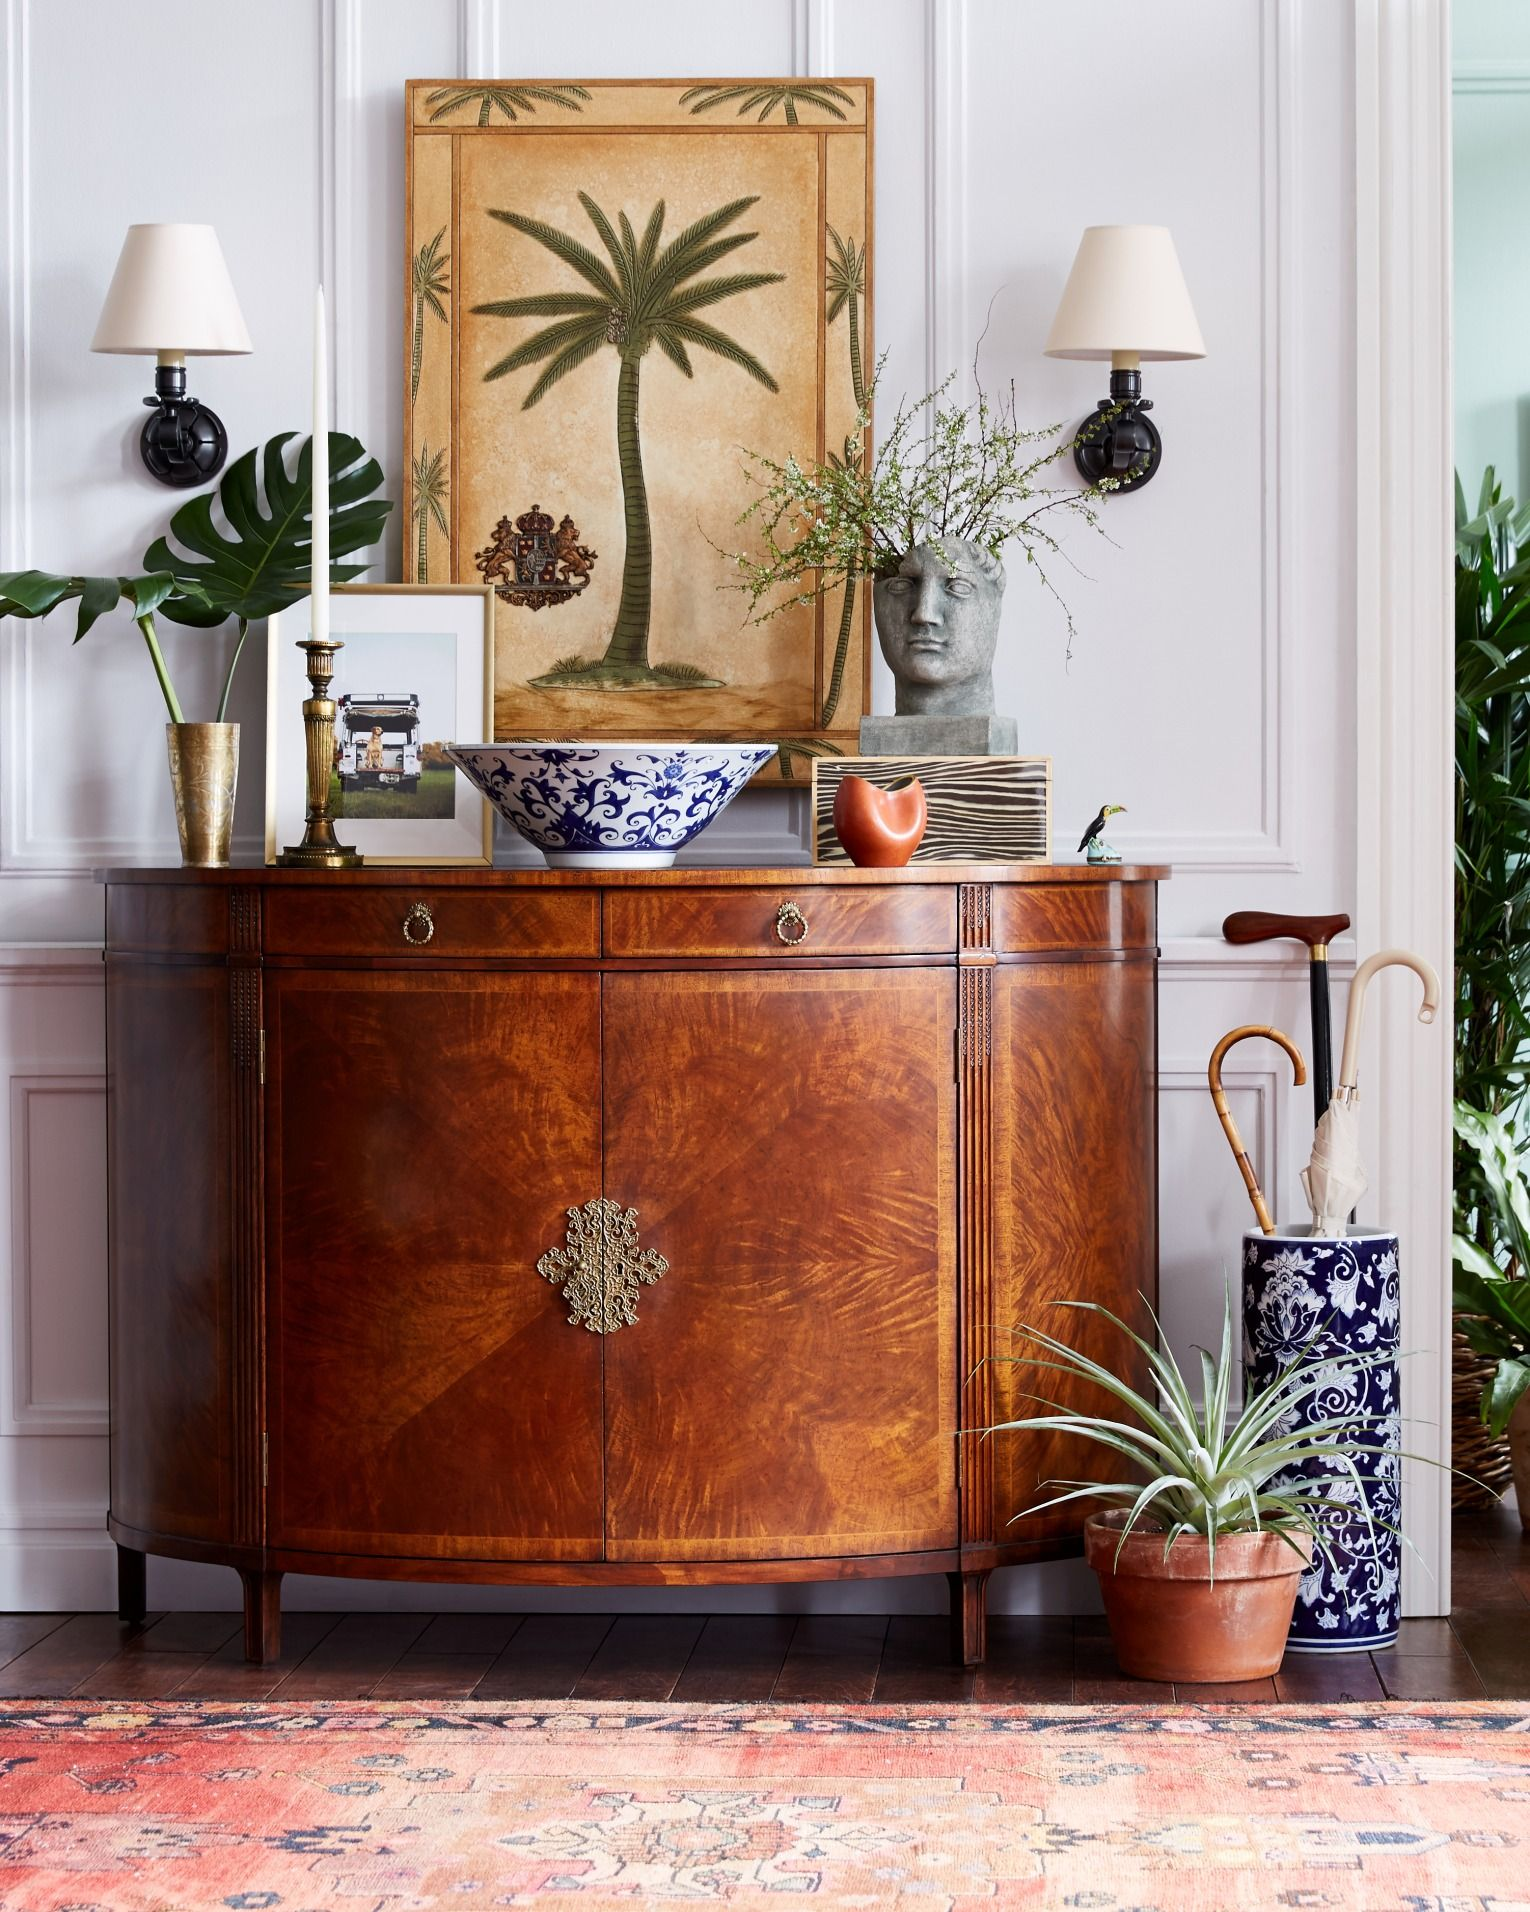 Salon Style Colonial Love This Mix Of Antique Accents And Tropical Pieces For A